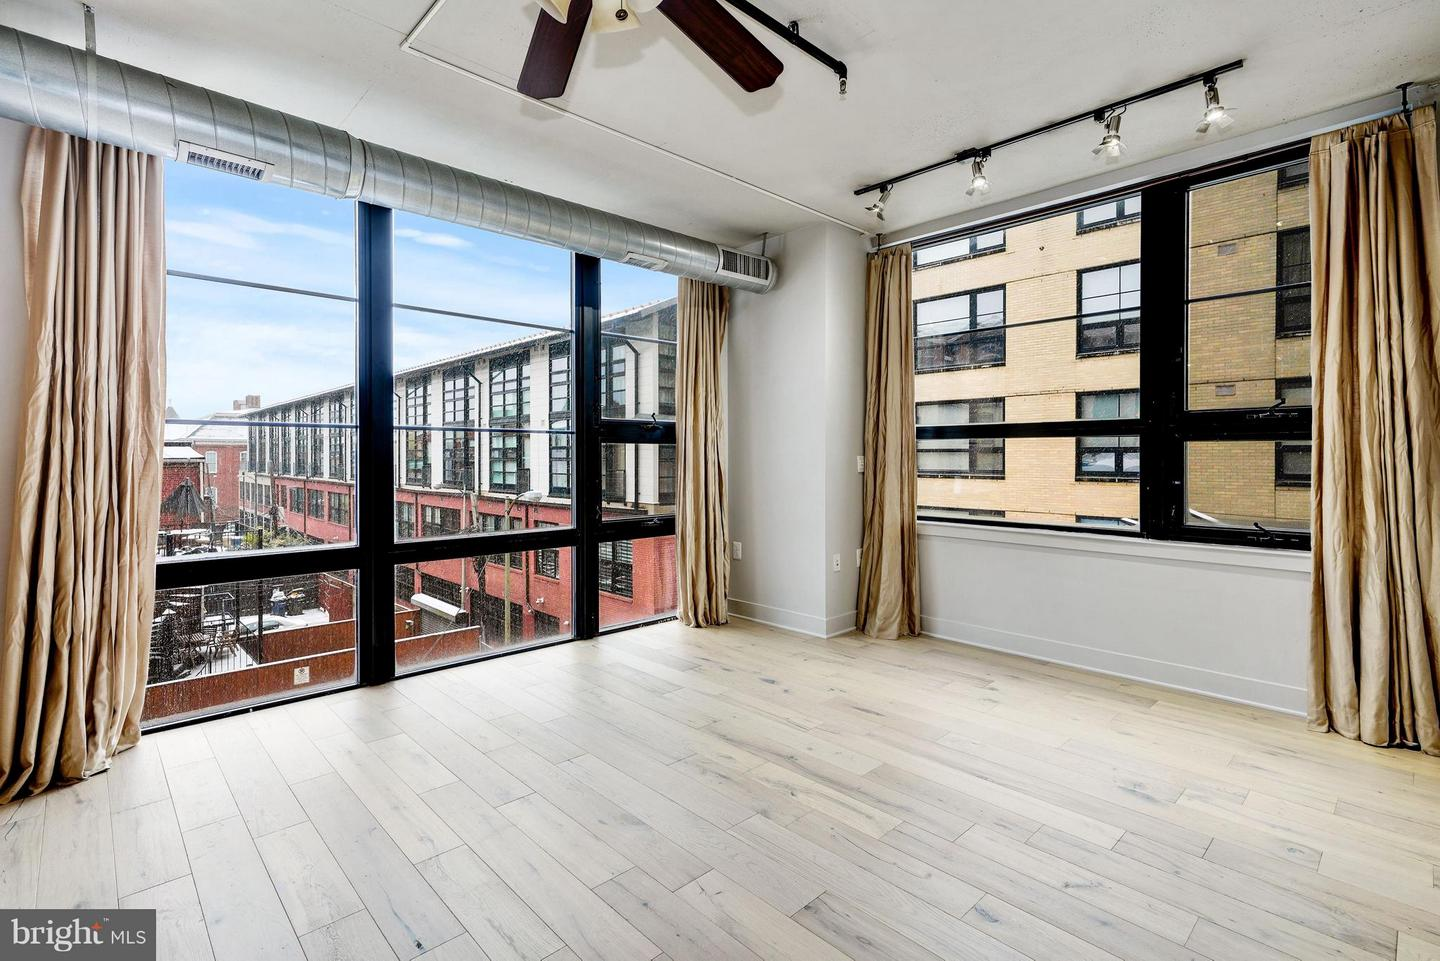 Additional photo for property listing at 2125 14th St NW #333 Washington, District Of Columbia 20009 United States